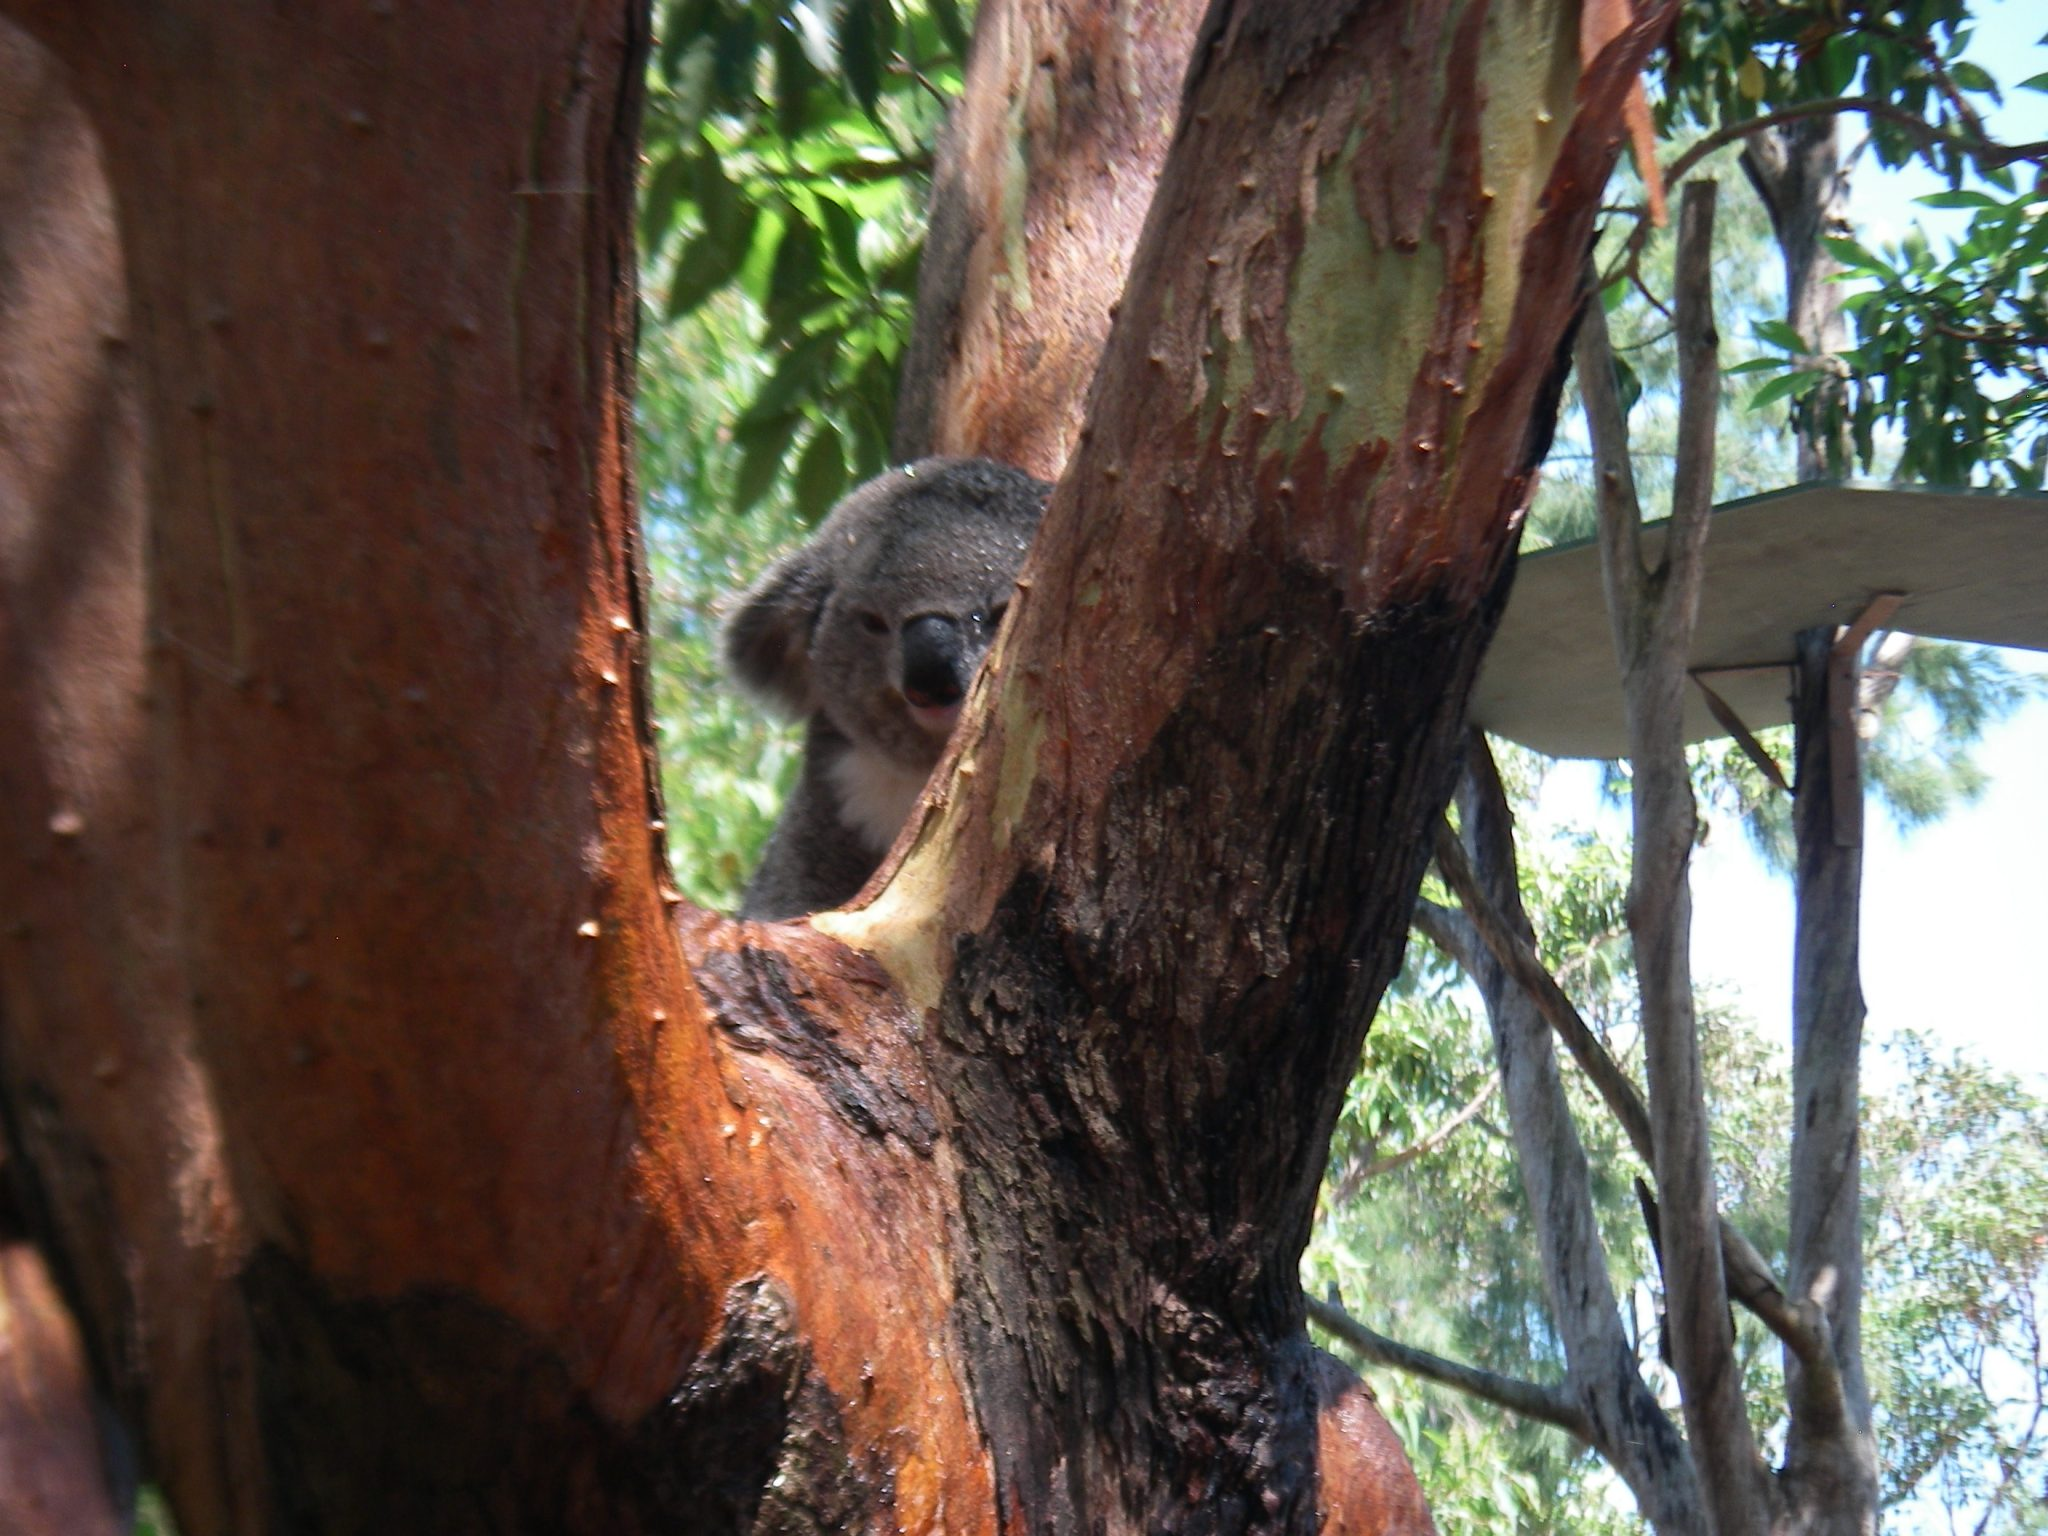 59.1. A koala waking up to eat some Eucalyptus leaves. Koalas sleep about 22 hours a day!